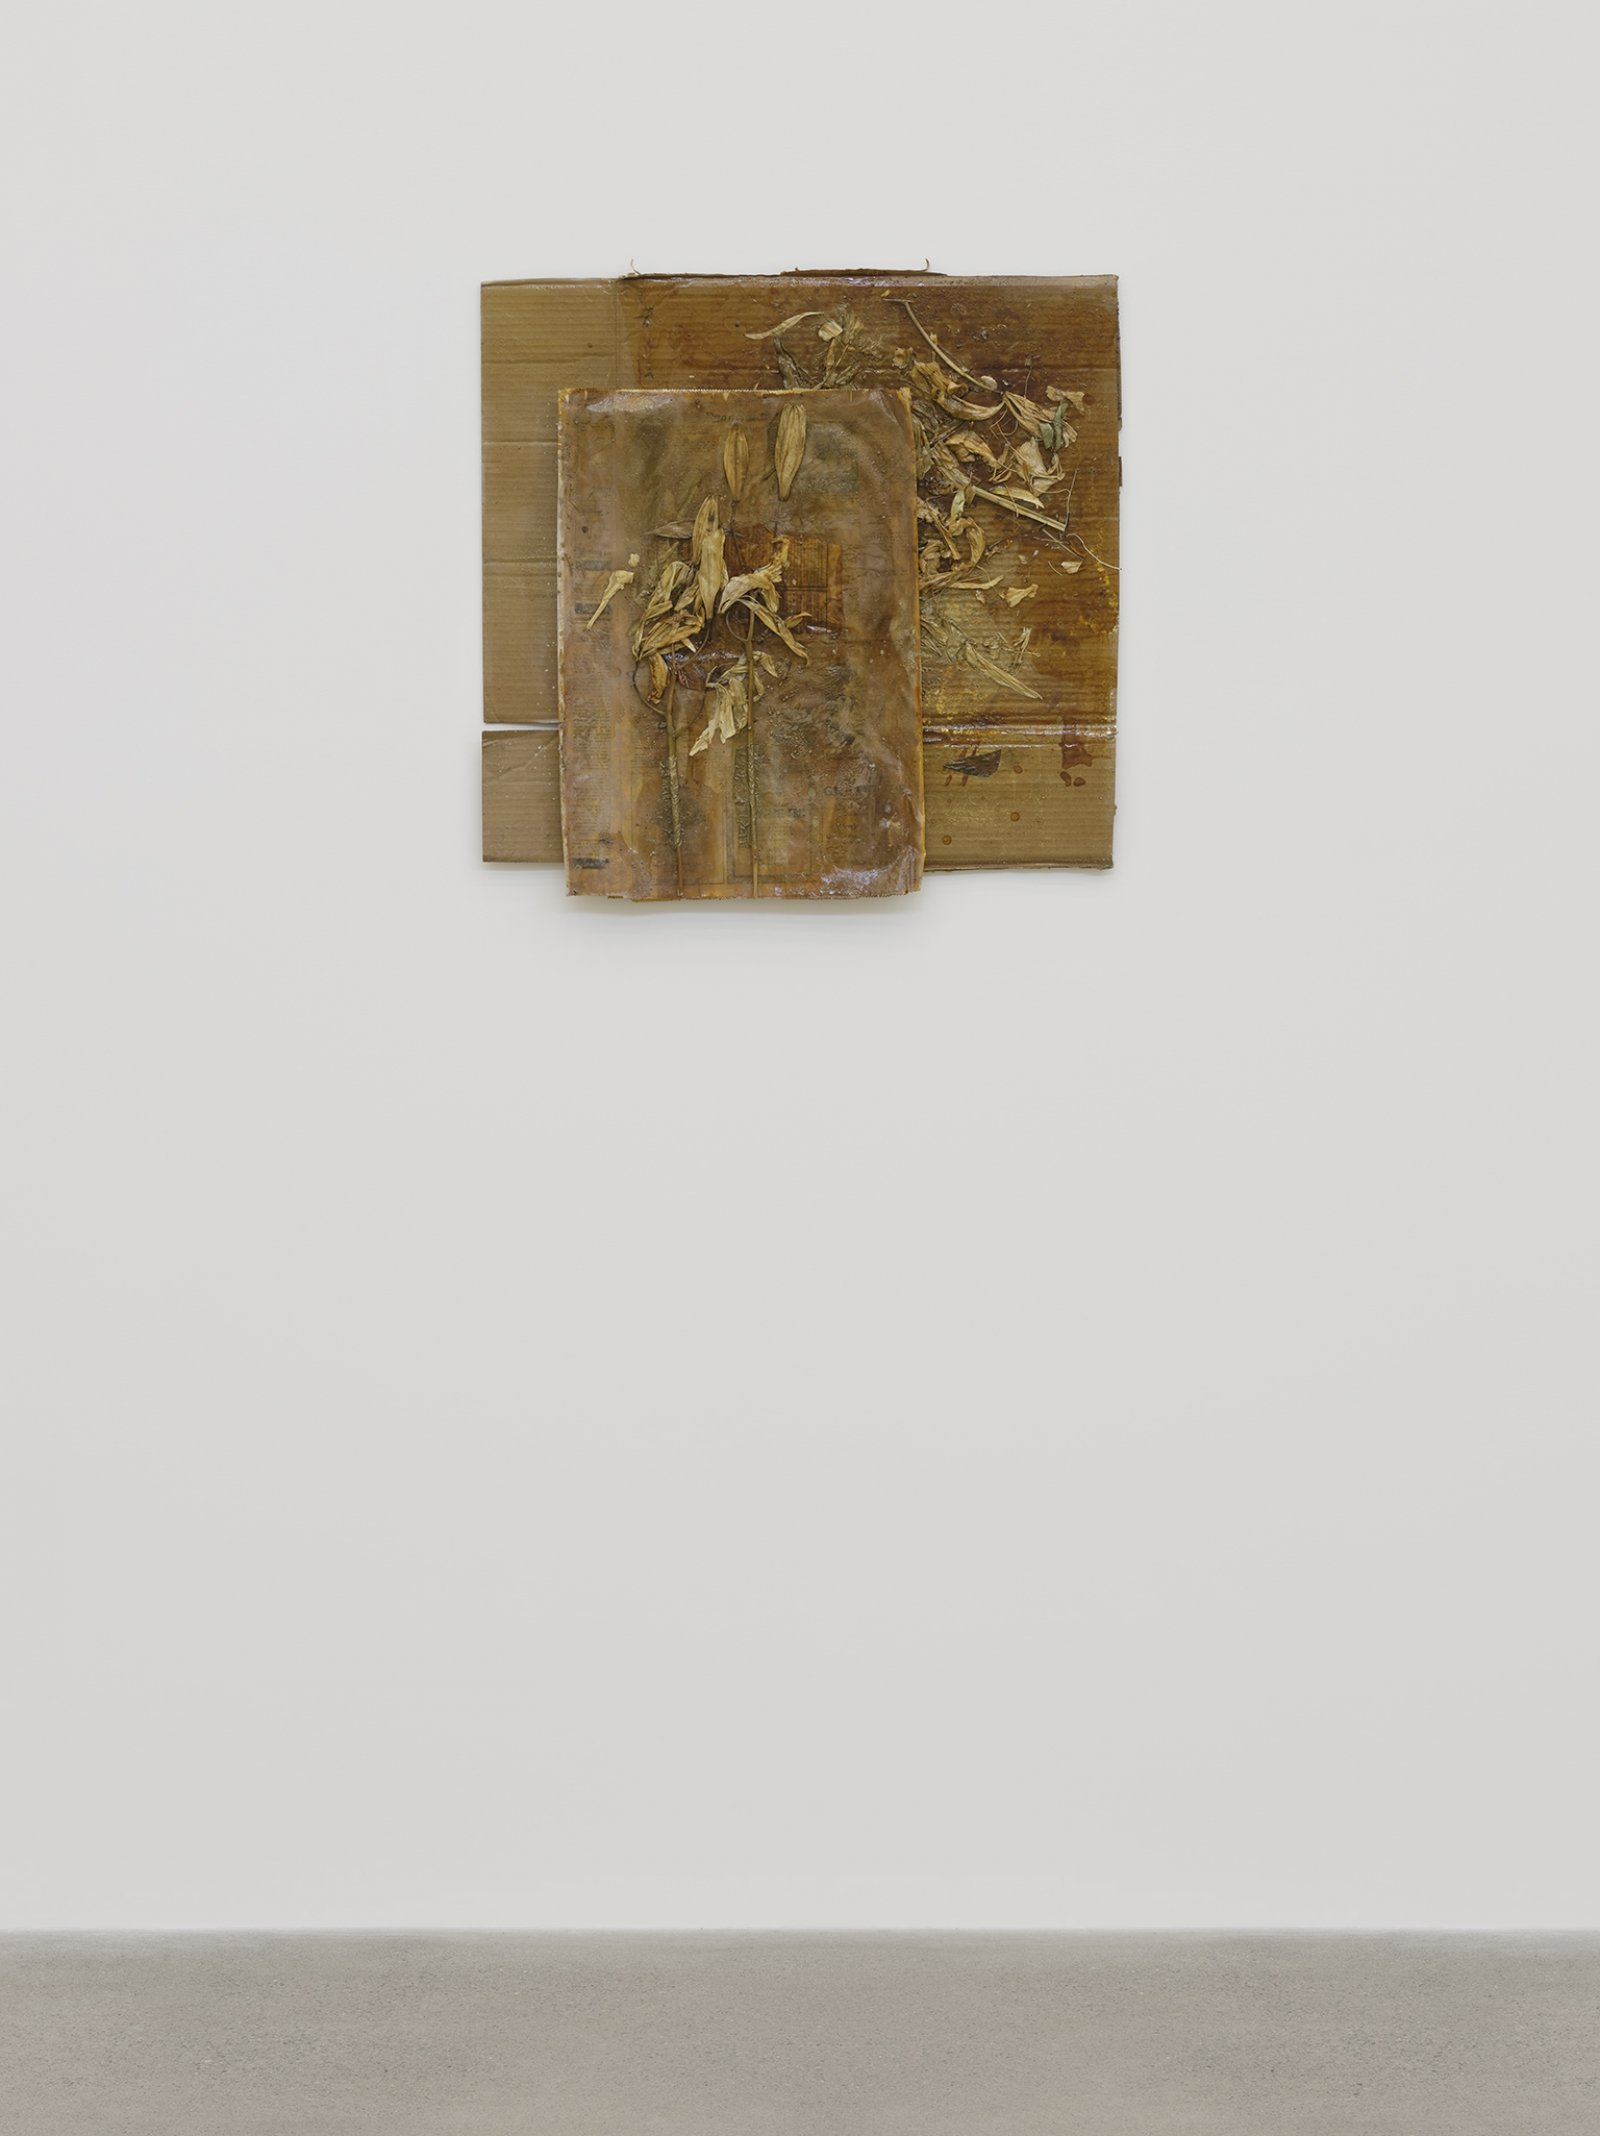 Rochelle Goldberg, Dirty Wall X, 2019, cardboard, newsprint, tissue paper, lilies, shellac, gold pigment, dirt from the river, 28 x 28 in. (71 x 71 cm) by Rochelle Goldberg